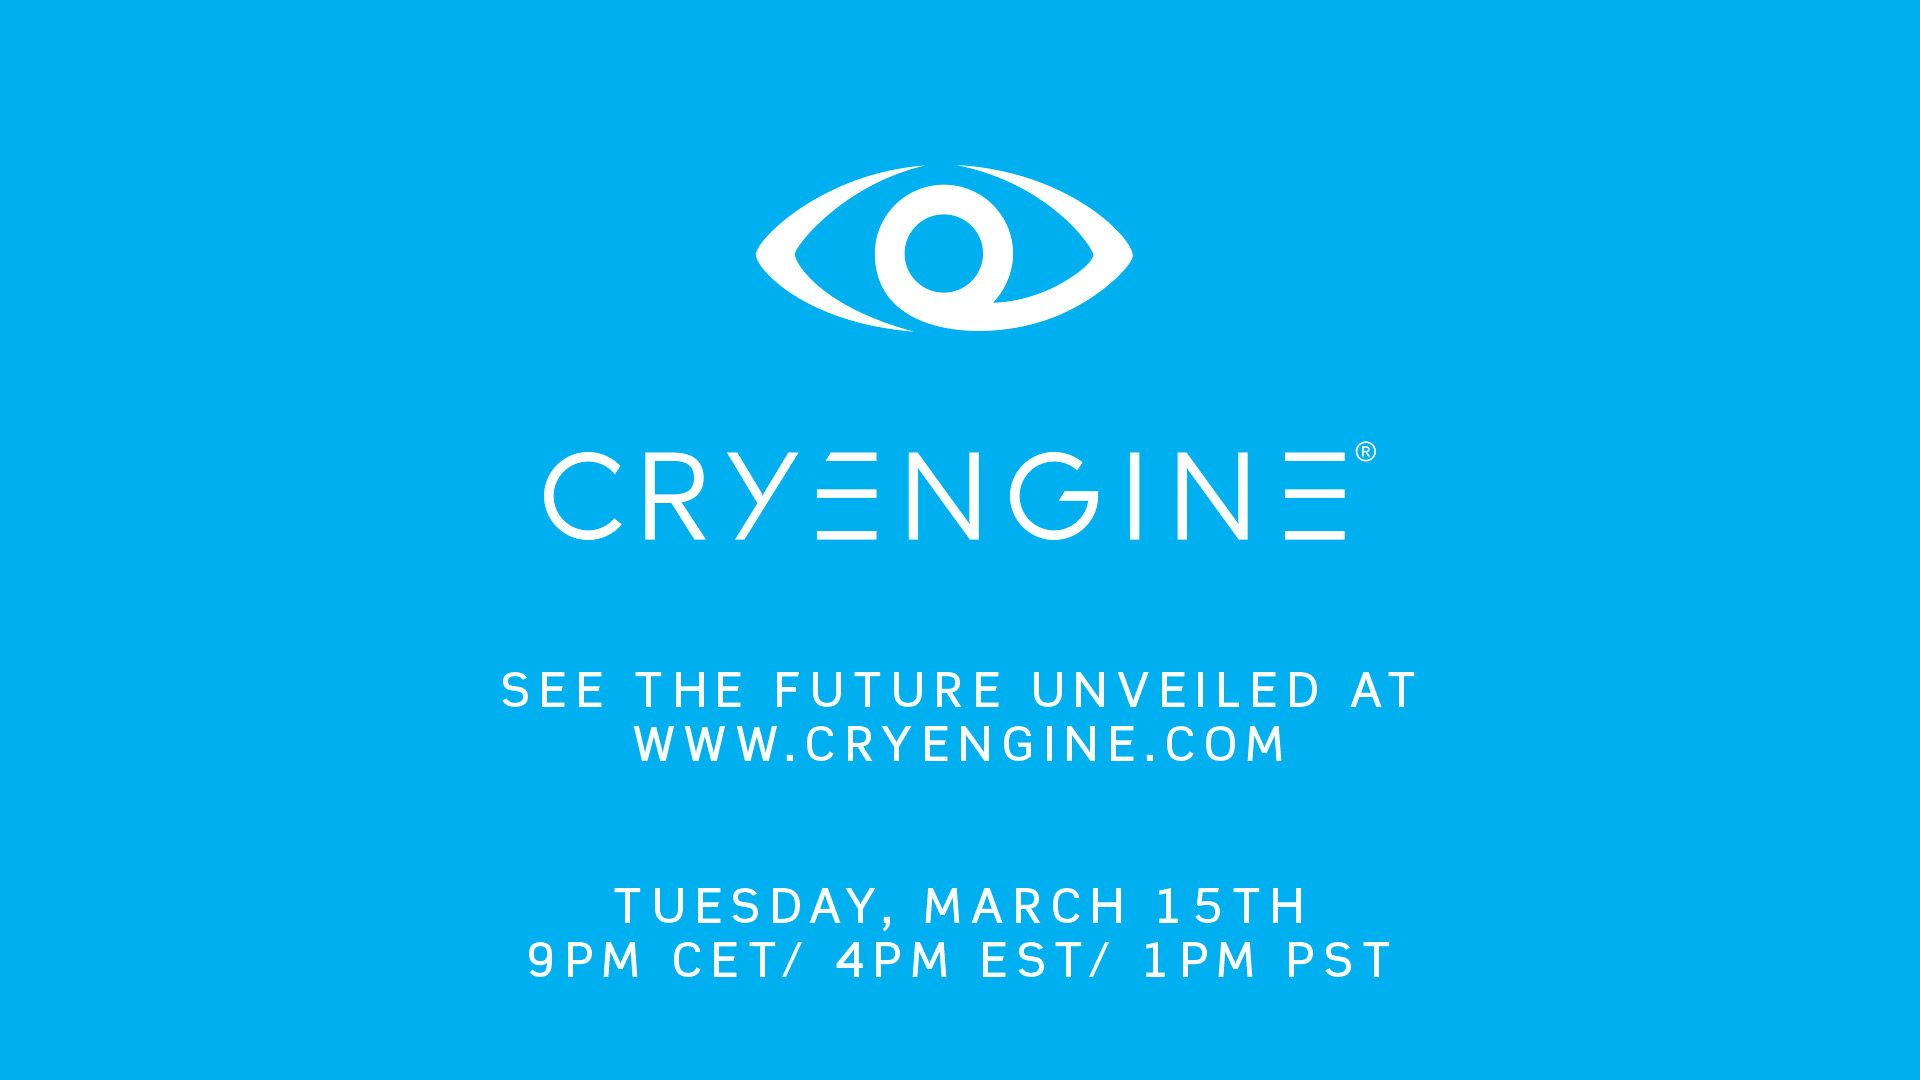 Next Tuesday, we unveil the future of CRYENGINE